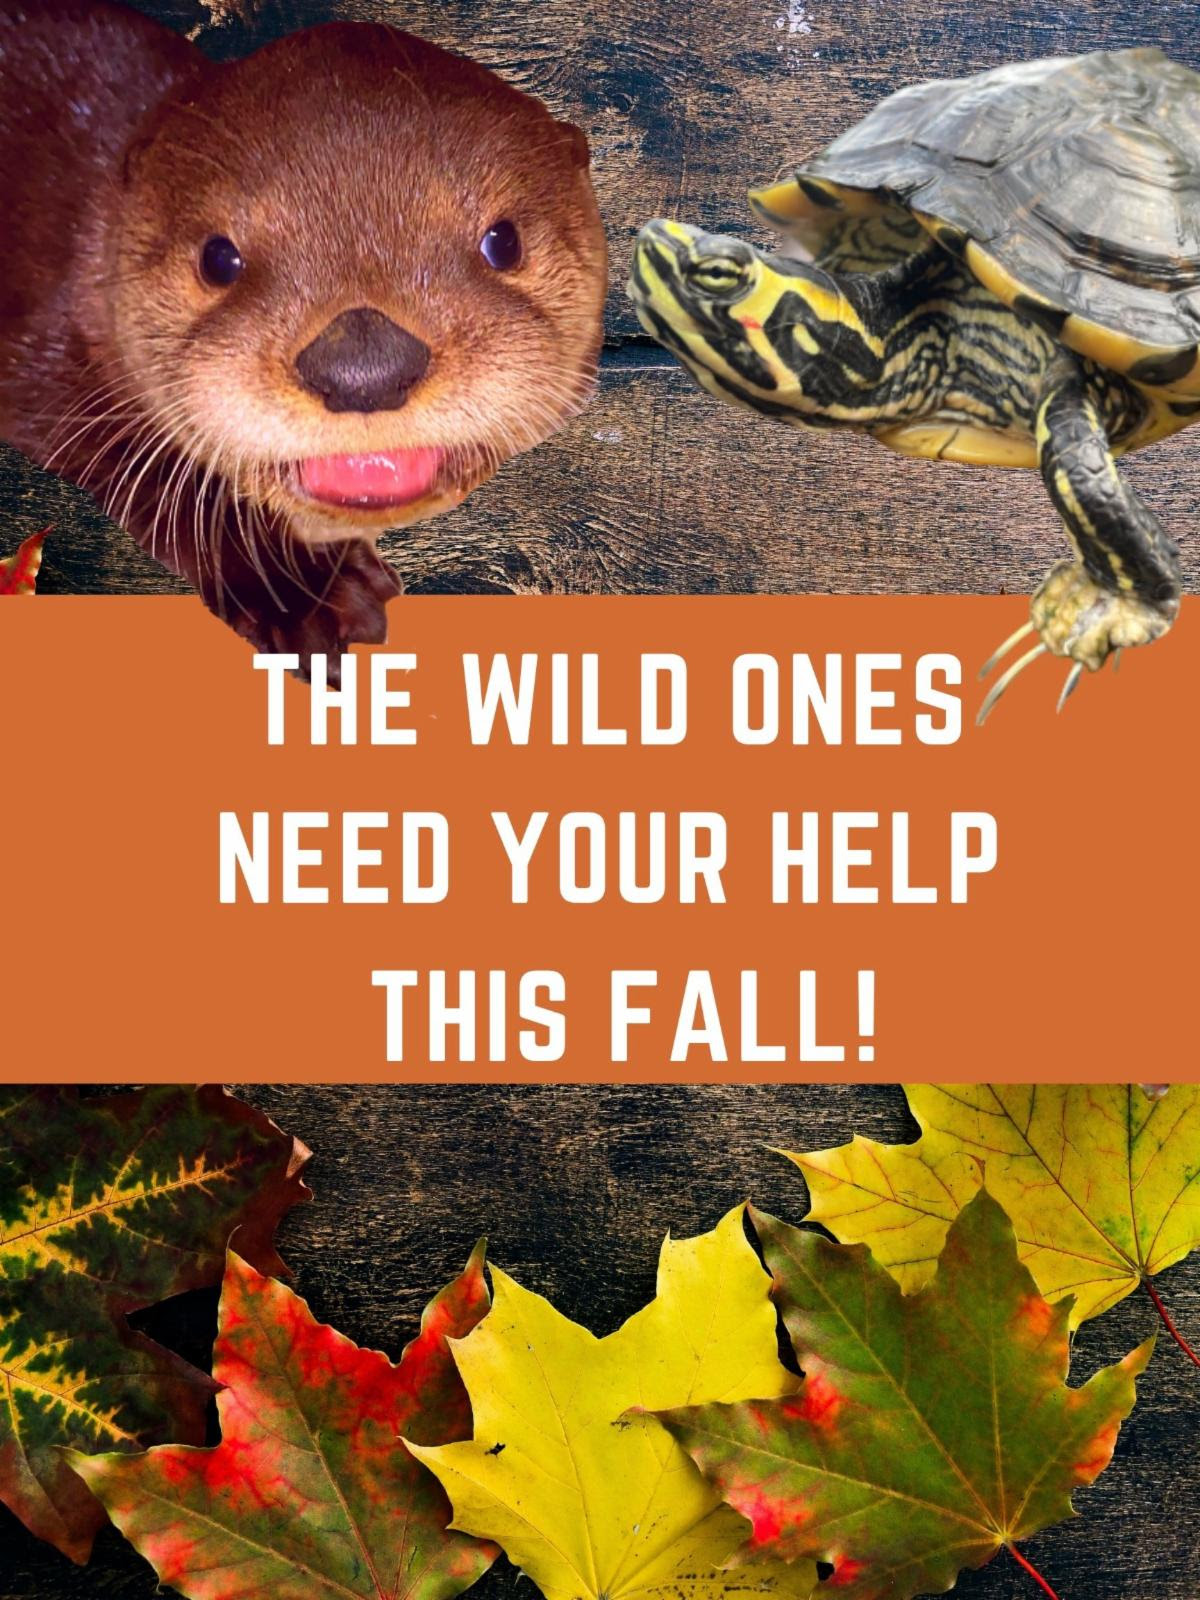 Help save the wild ones this fall